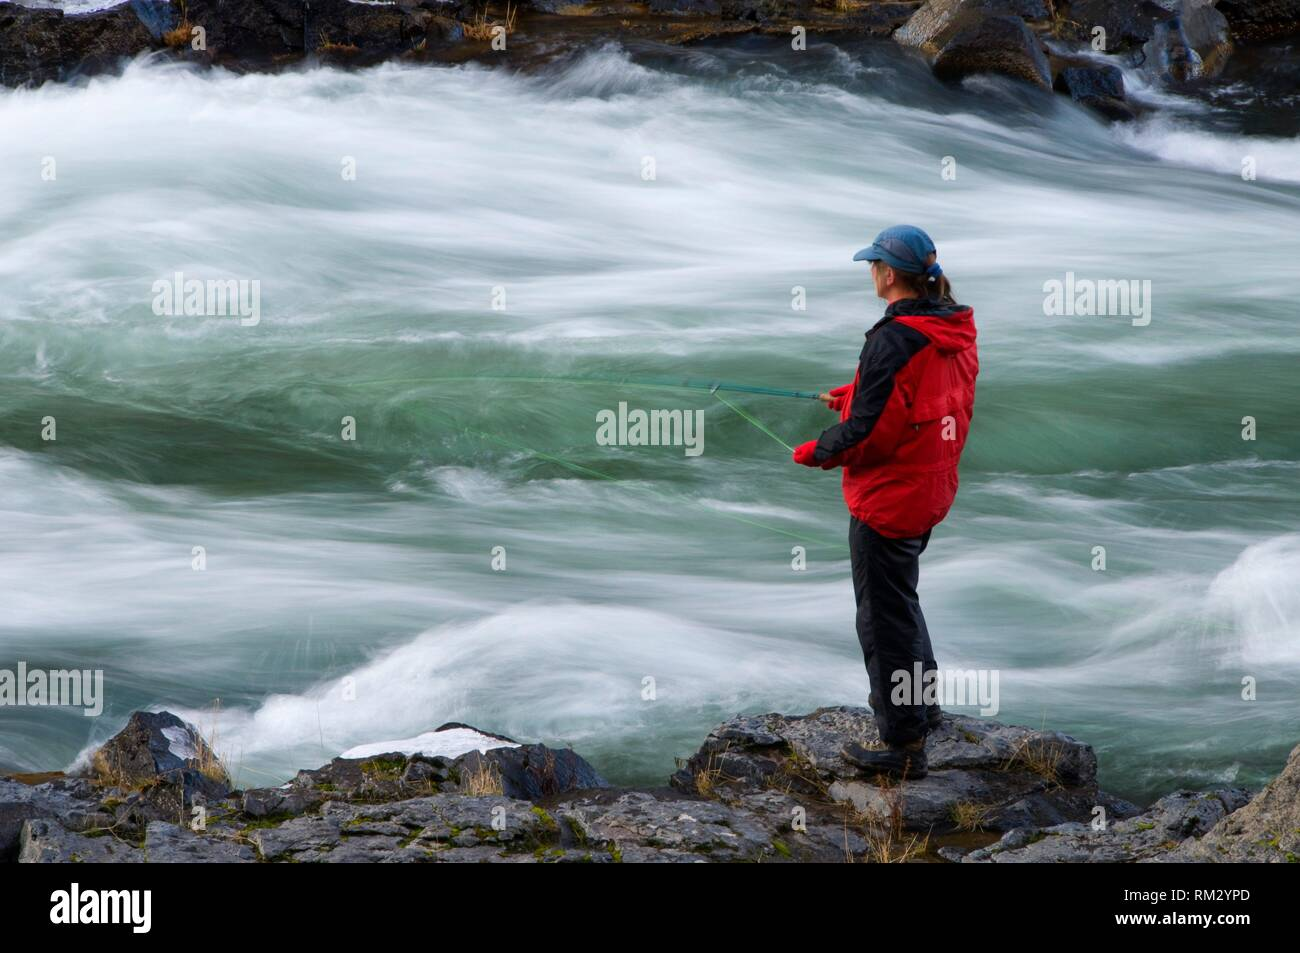 Flyfishing, Steelhead Falls Wilderness Study Area, Deschutes Wild and Scenic River, Prineville District Bureau of Land Management, Oregon. - Stock Image